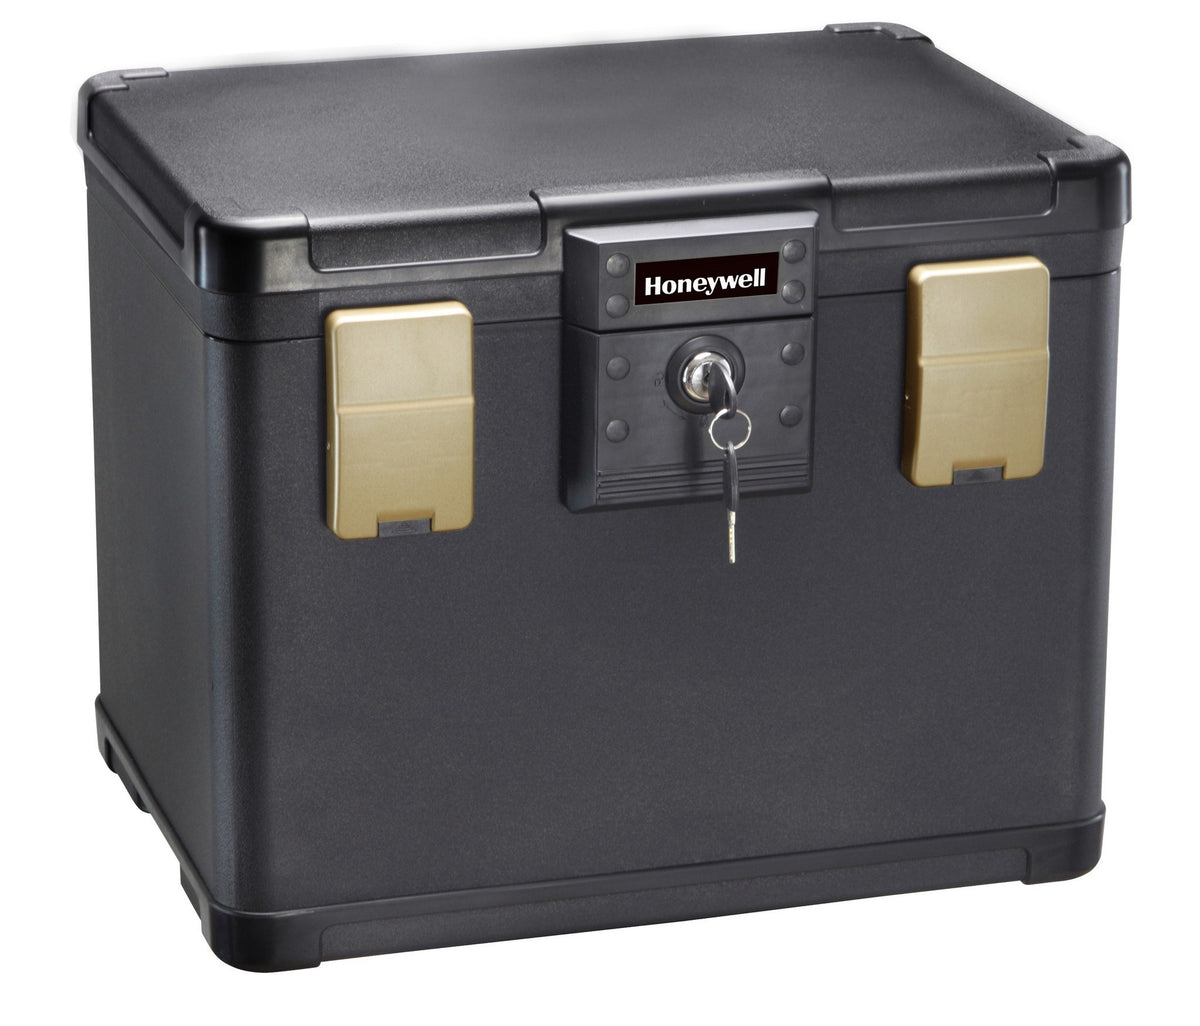 Honeywell 1106 Molded Fire/Water Chest